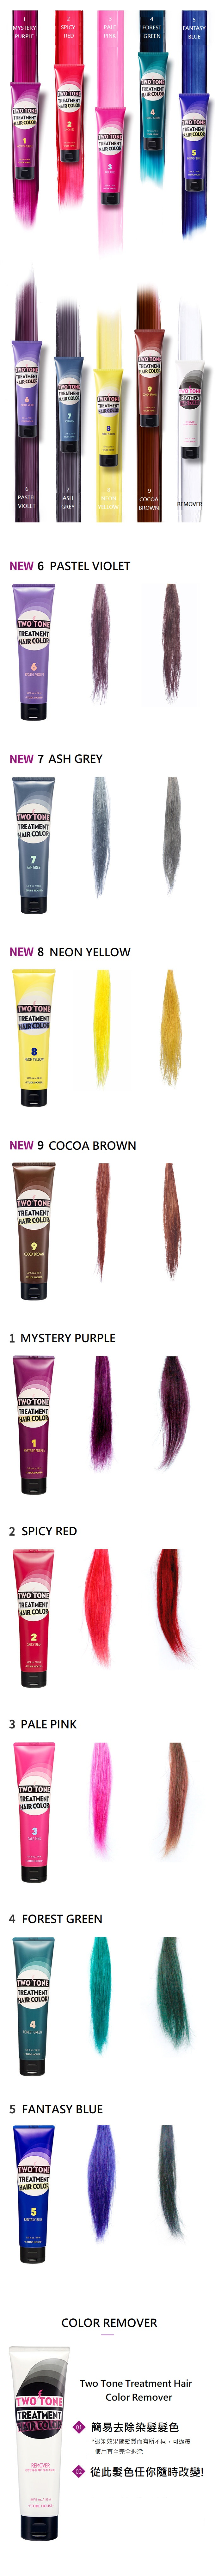 Etude House Two Tone Treatment Hair Color 1 Hktvmall Online